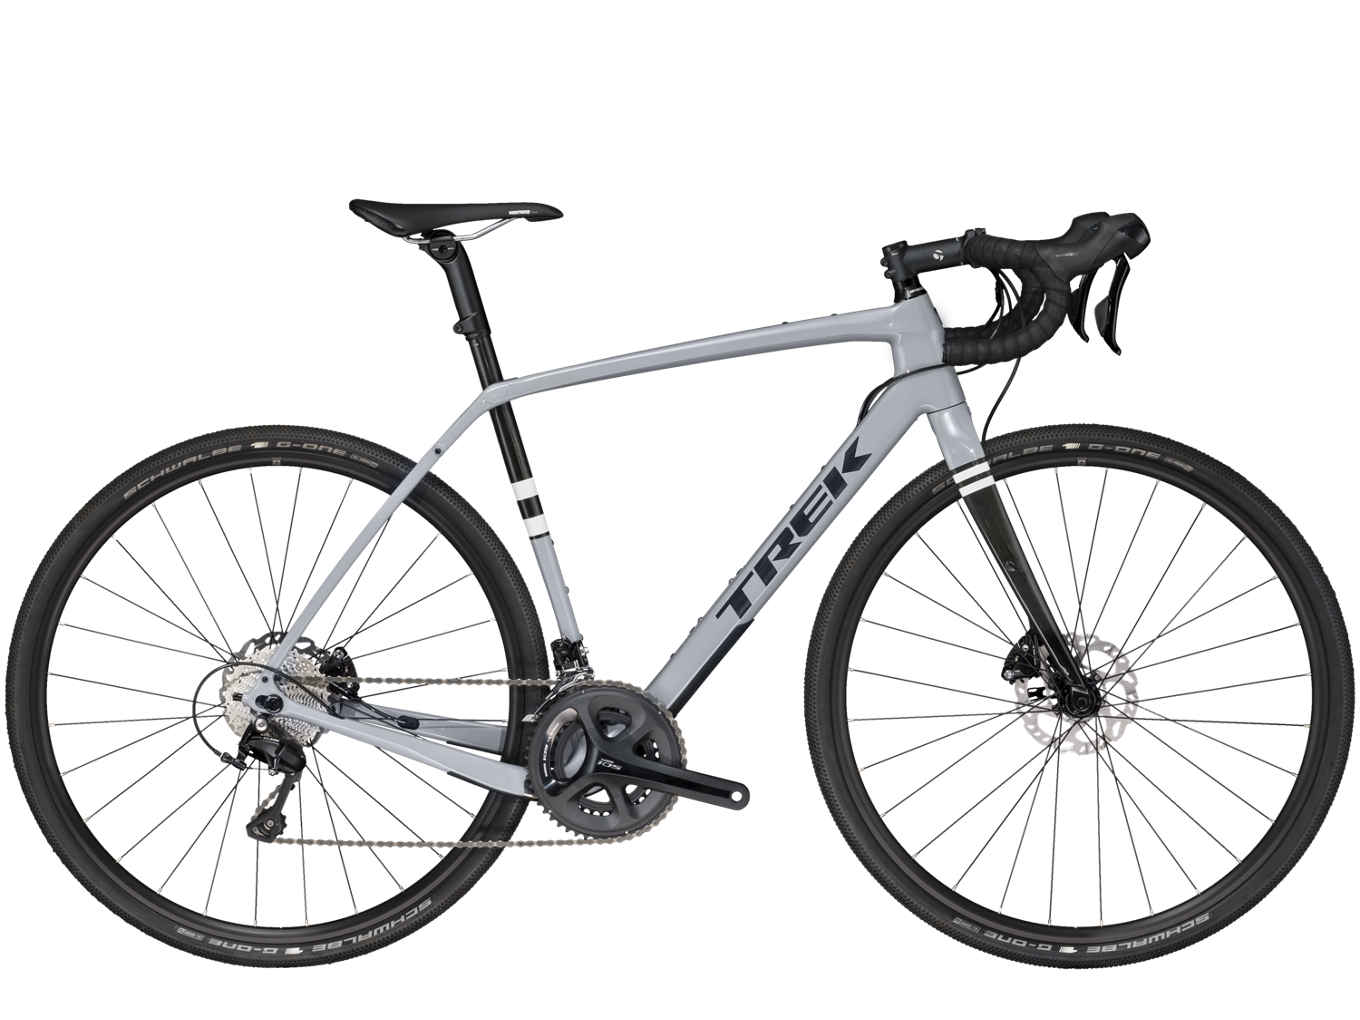 43d7bf0f465 Checkpoint SL 5 is a carbon gravel bike made for epic all-road adventures.  It's built with a full Shimano 105 drivetrain and hydraulic disc brakes, ...